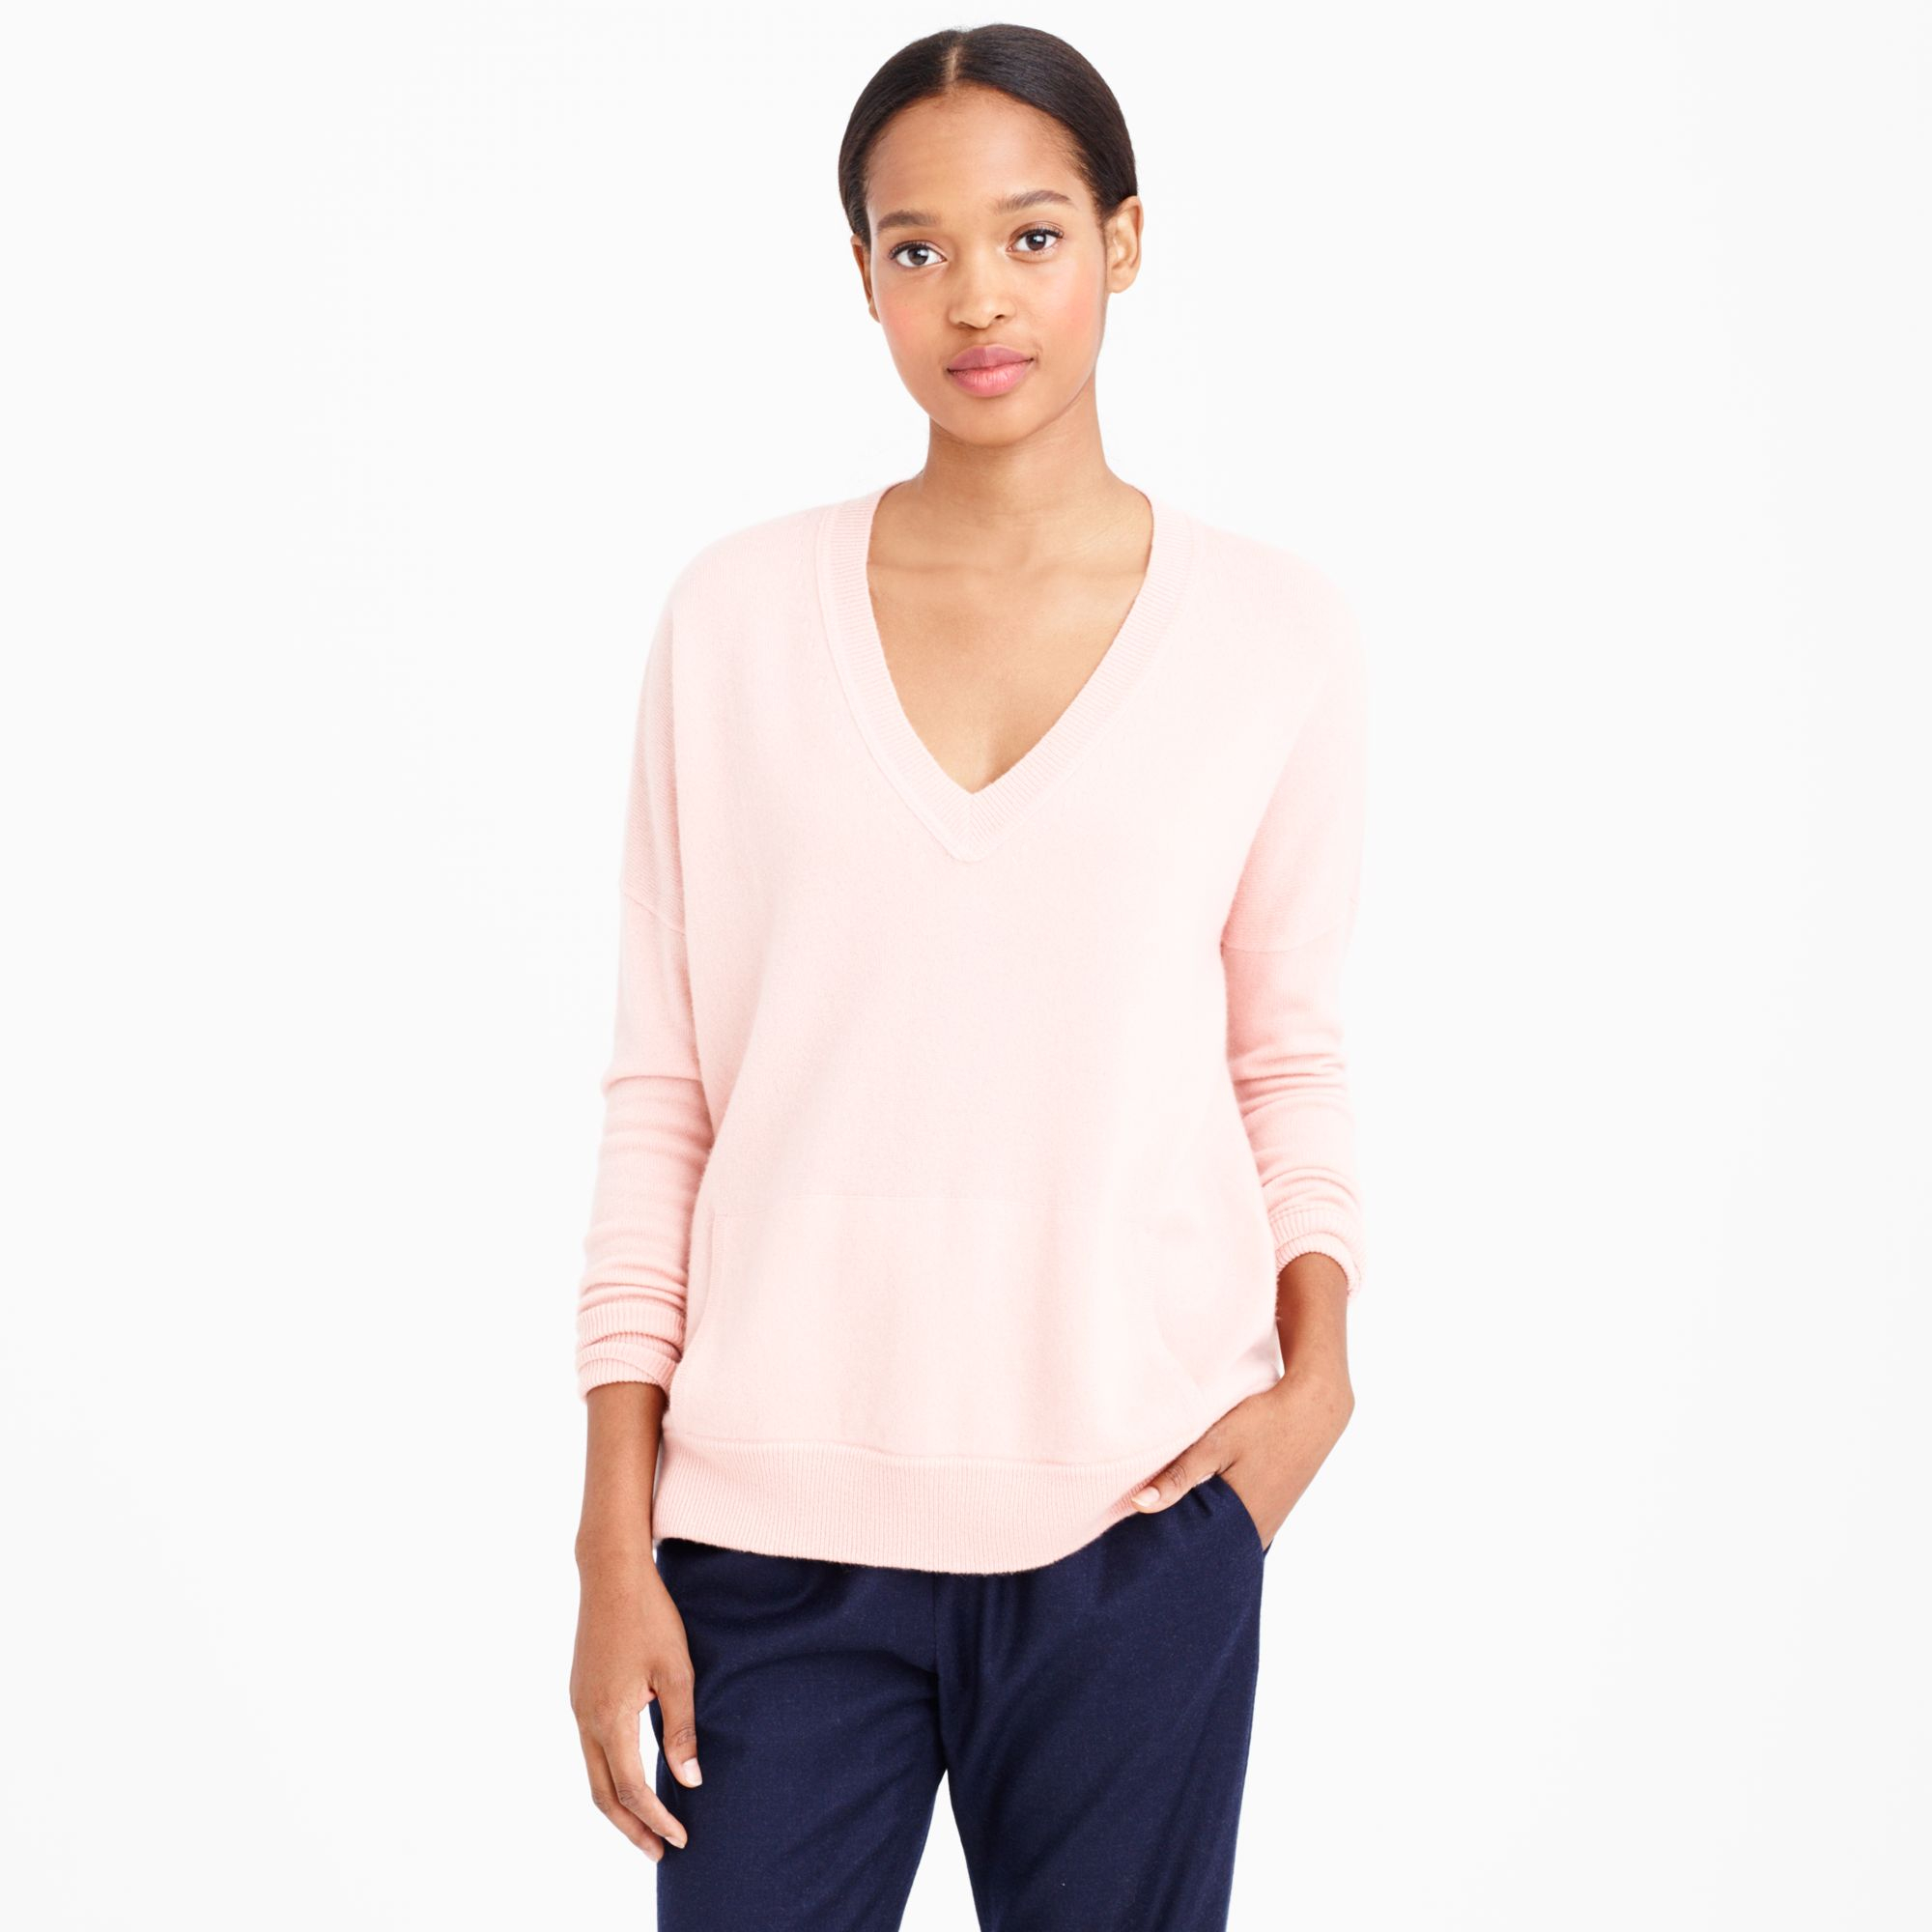 J.crew Collection Cashmere V-neck Pocket Sweater in Pink | Lyst